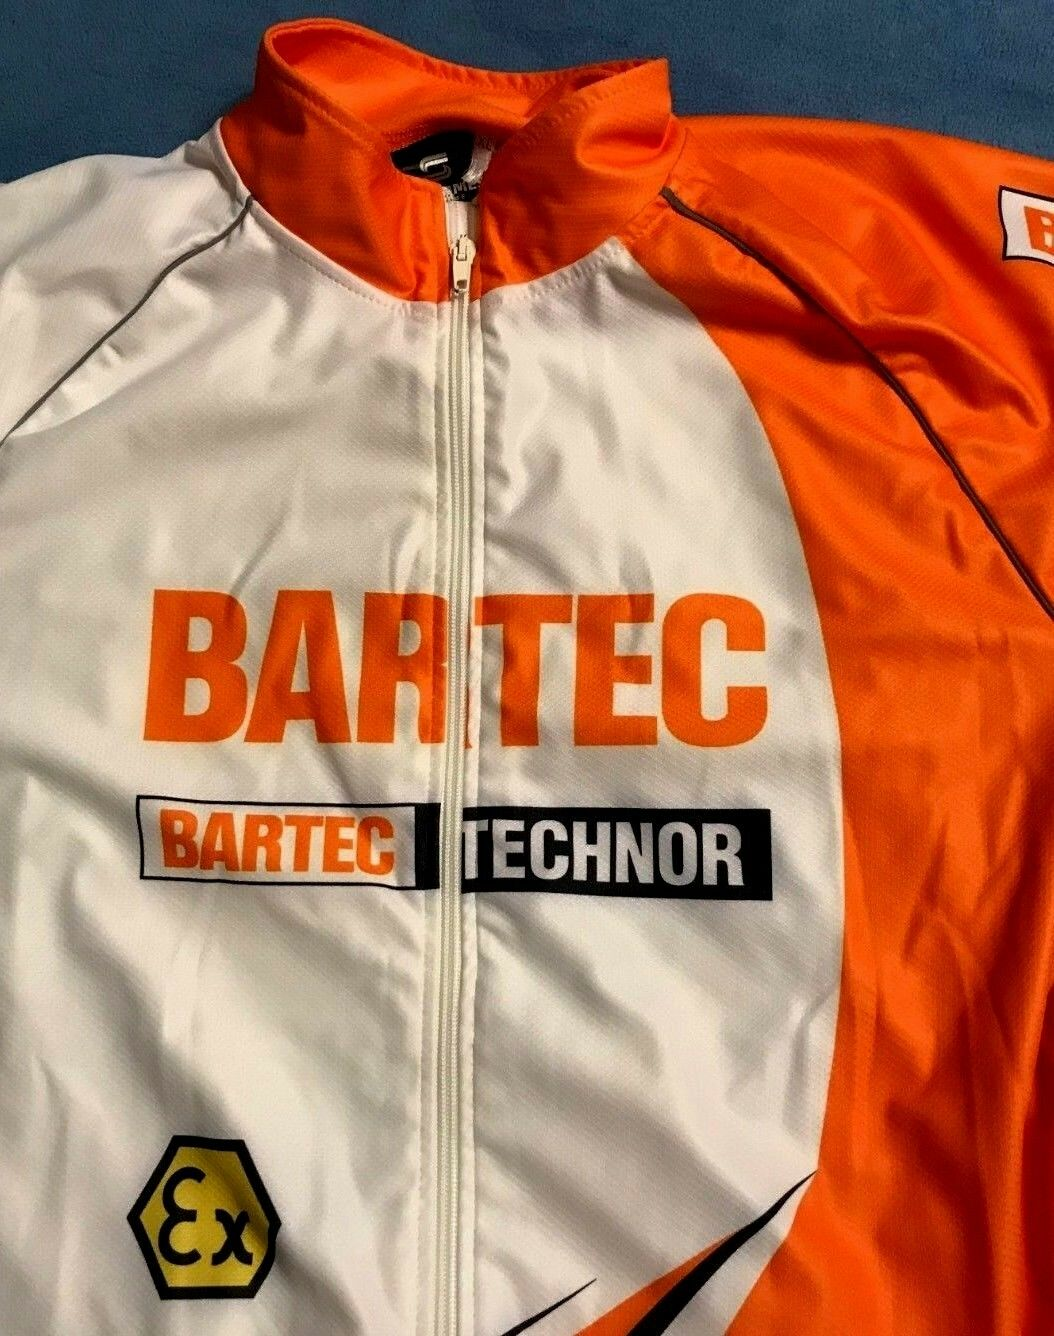 BARTEC TECHNOR CYCLING JERSEY ex STROMMES REKLAME MEN'S XL extra large BICYCLING